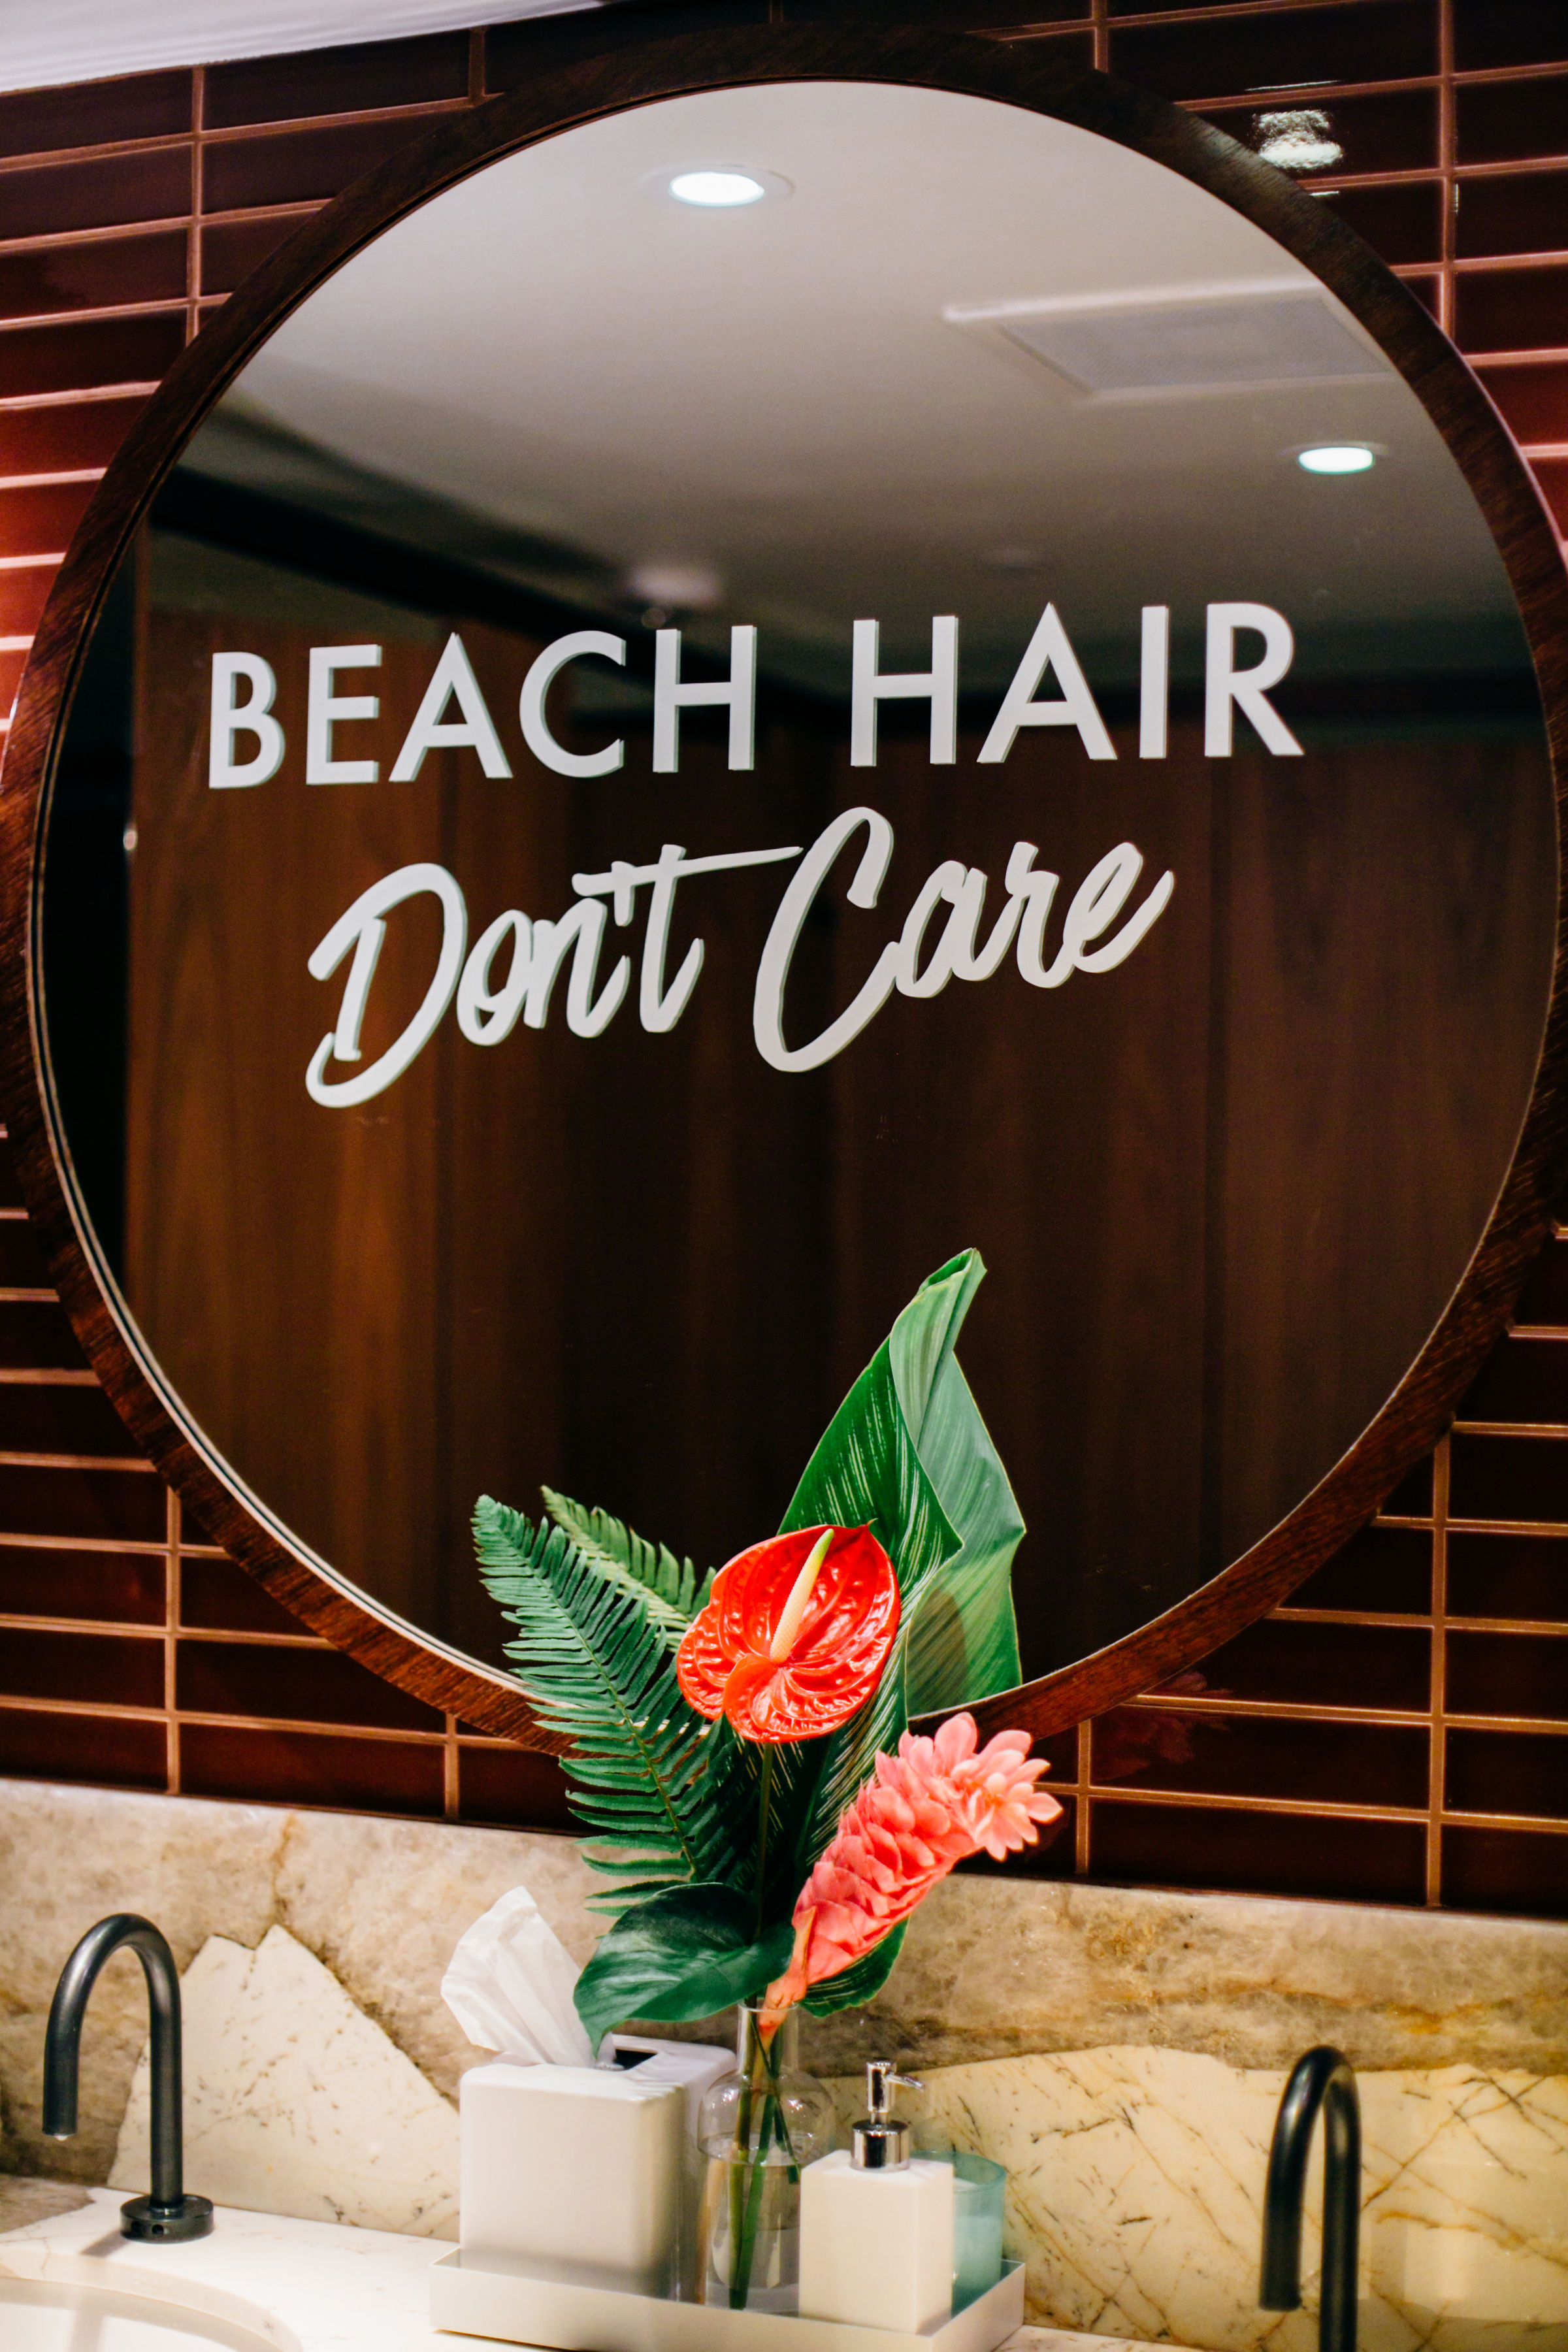 beach hair dont care decal.jpg